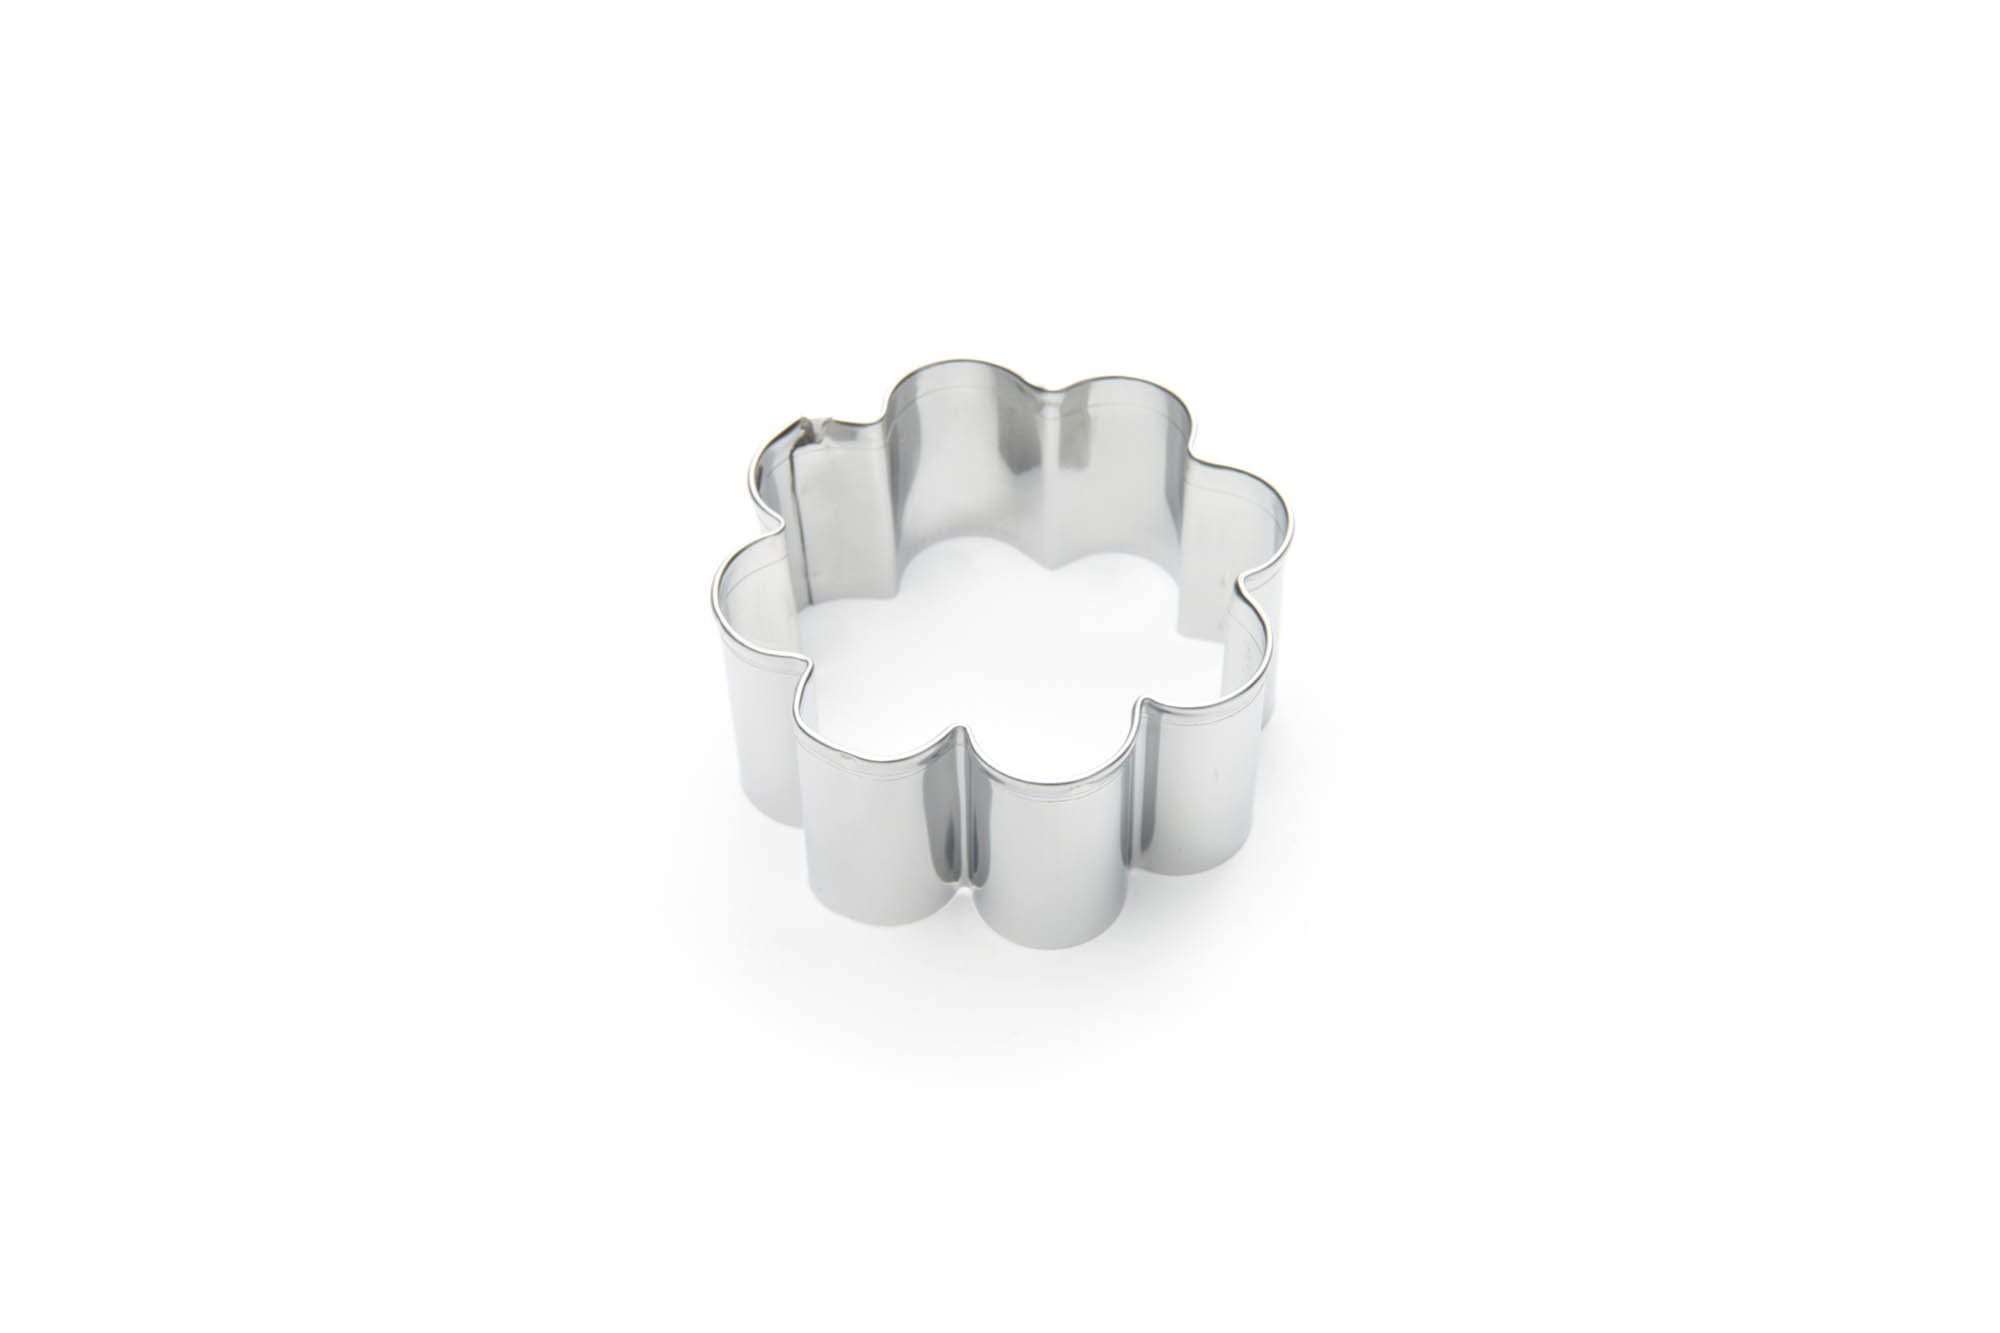 Fox Run 3380 Small Daisy Cookie Cutter, 2-Inch, Stainless Steel